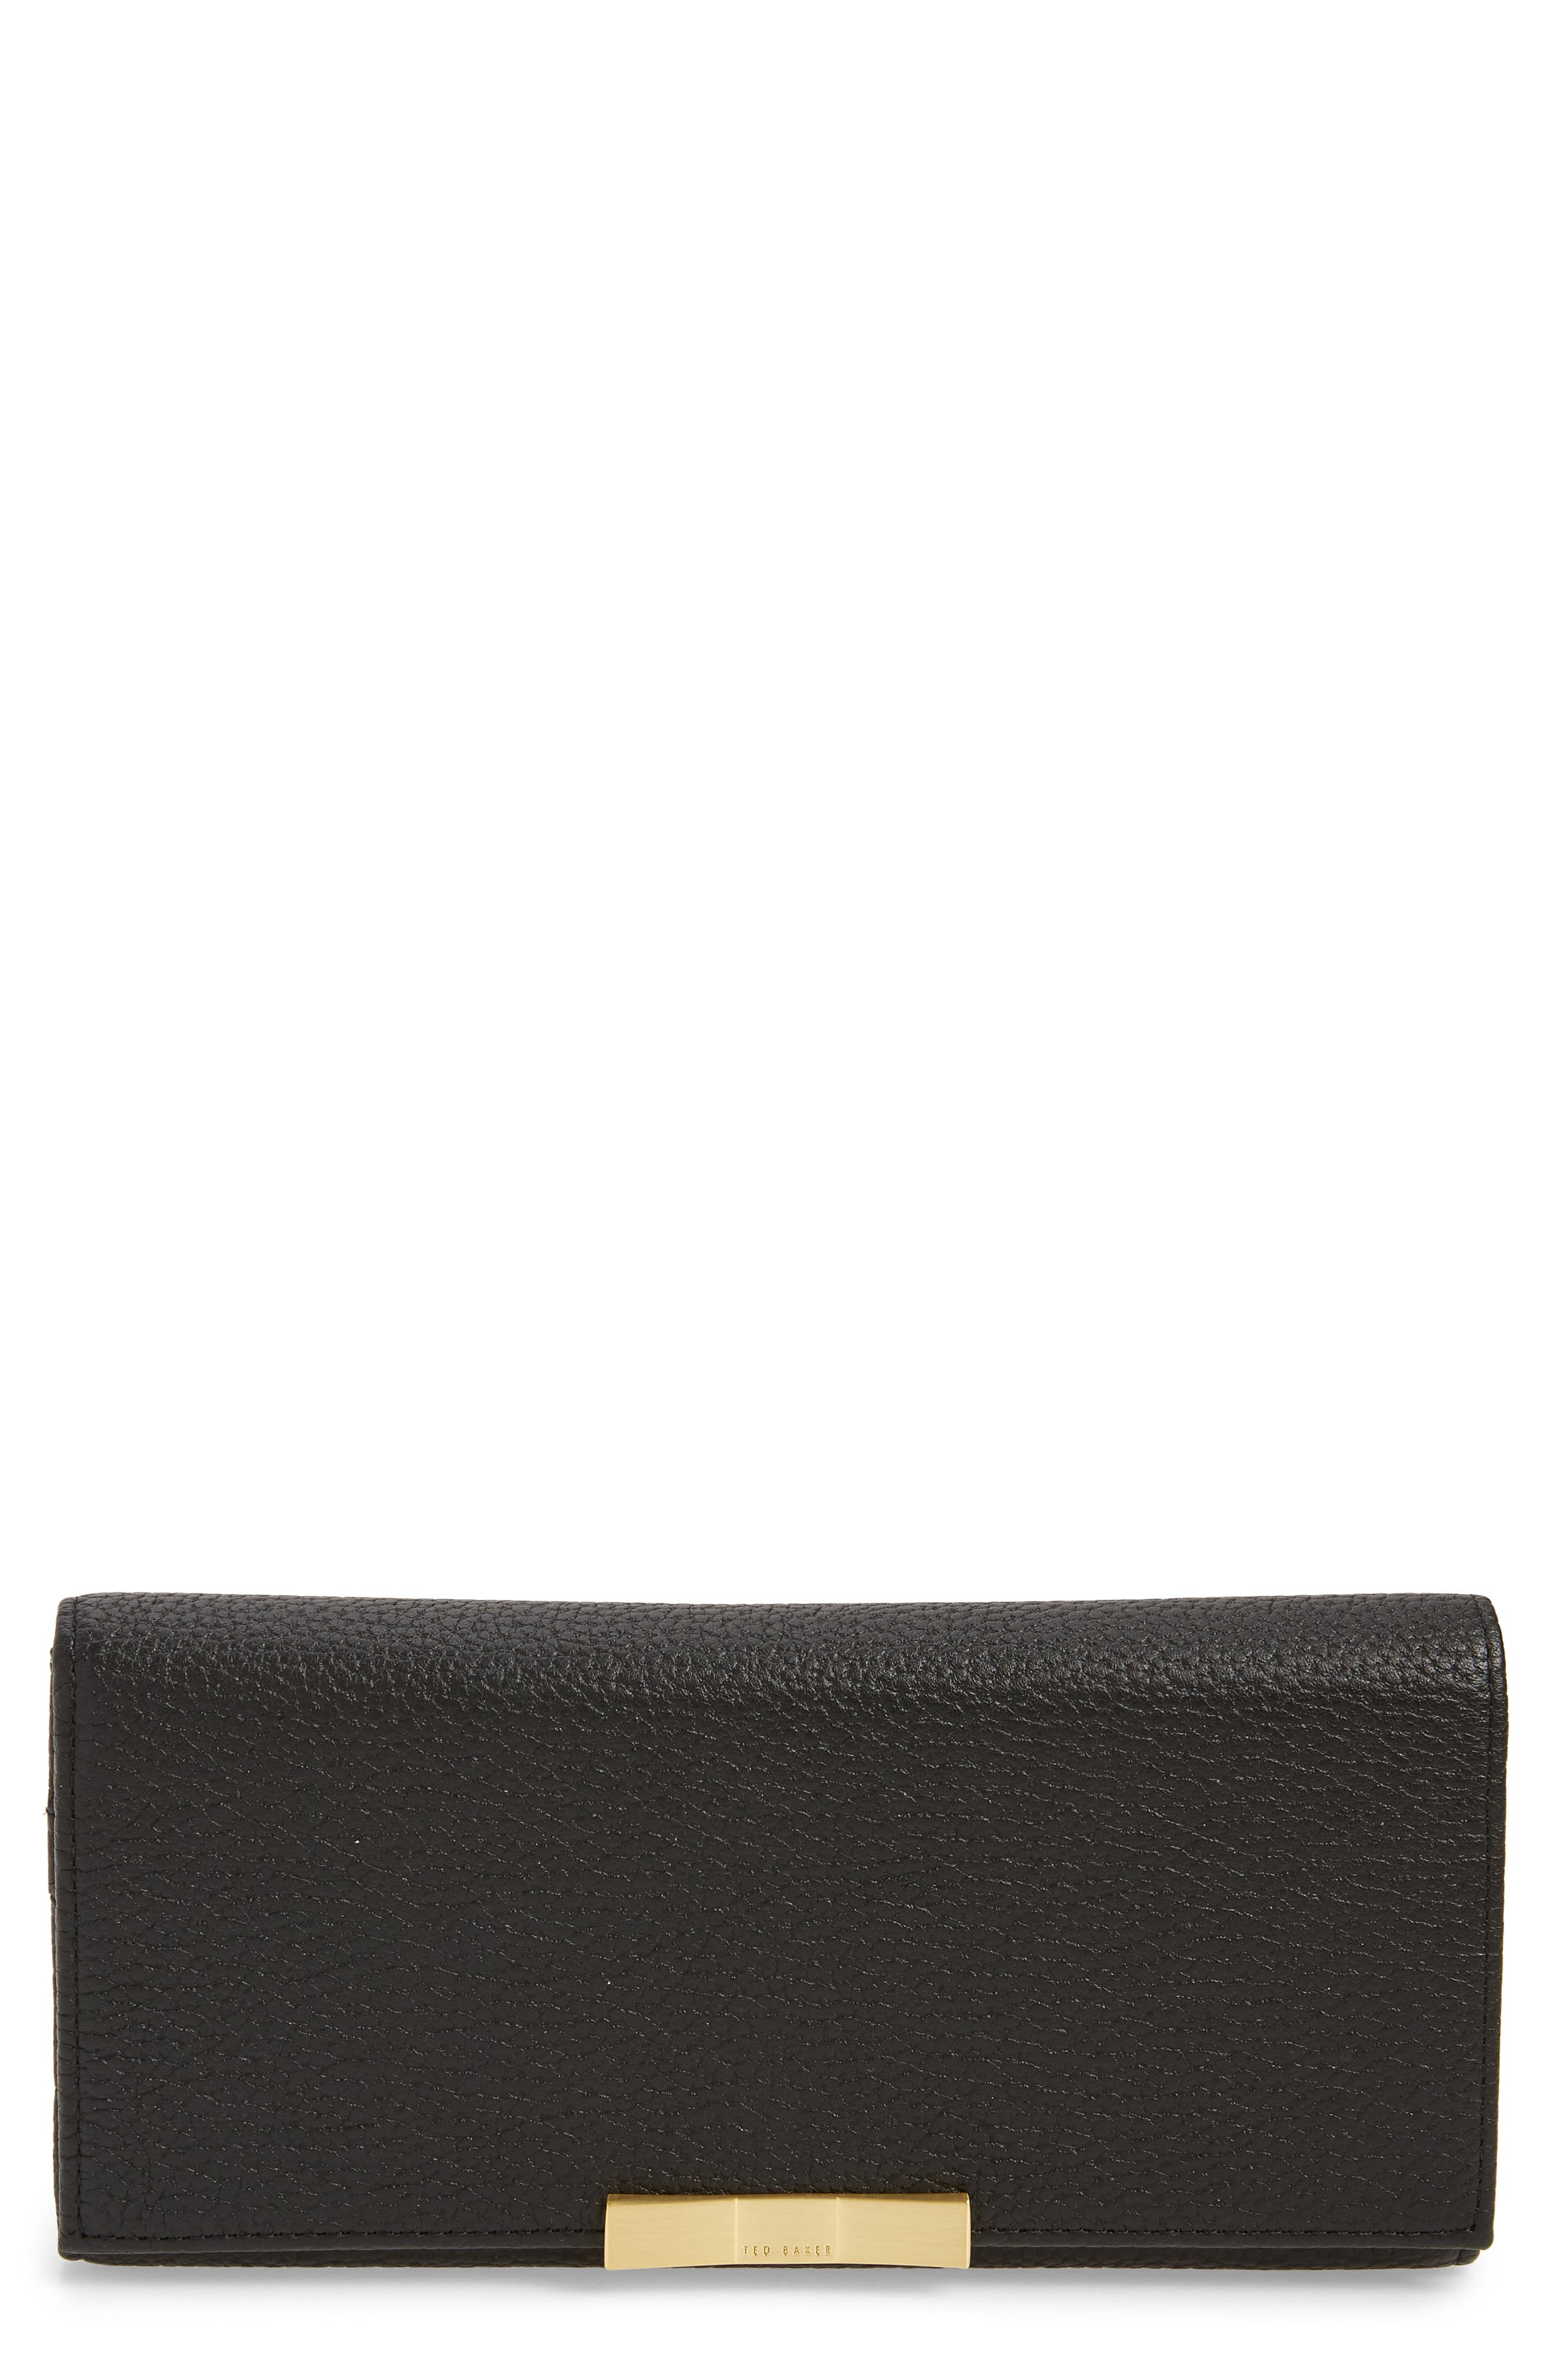 TED BAKER LONDON Bevv Bow Leather Matinée Wallet, Main, color, BLACK